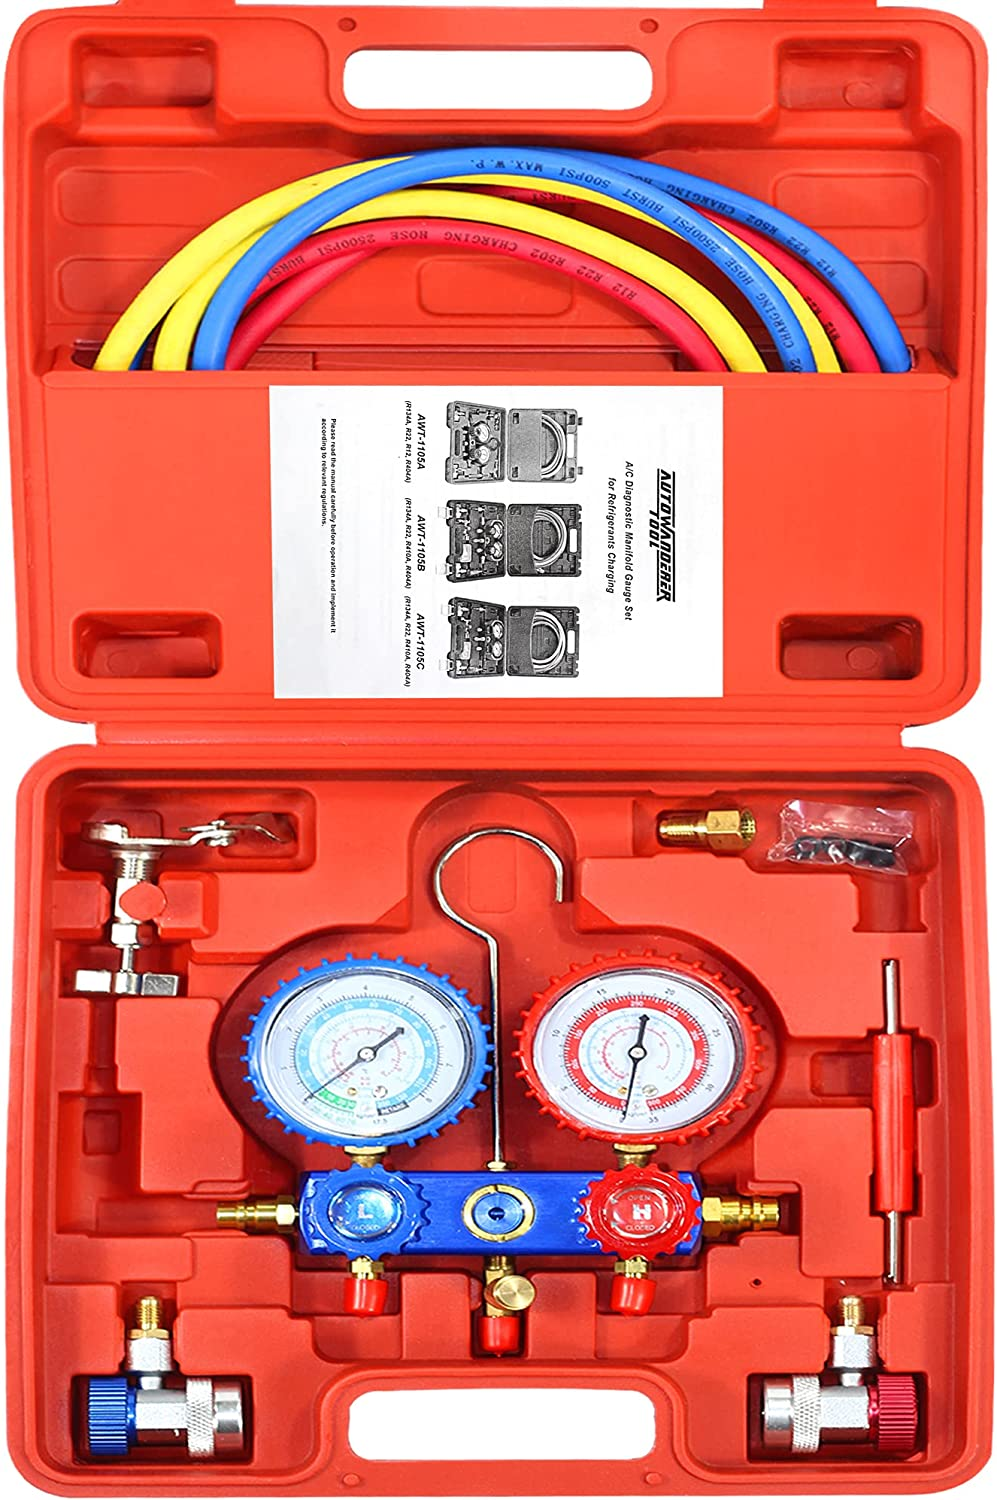 AutoWanderer Tool 3 Way A/C Manifold Gauge Air Conditioning Diagnostic Freon Charging Set Fits Auto Household R134A R404A R12 R22 Refrigerants